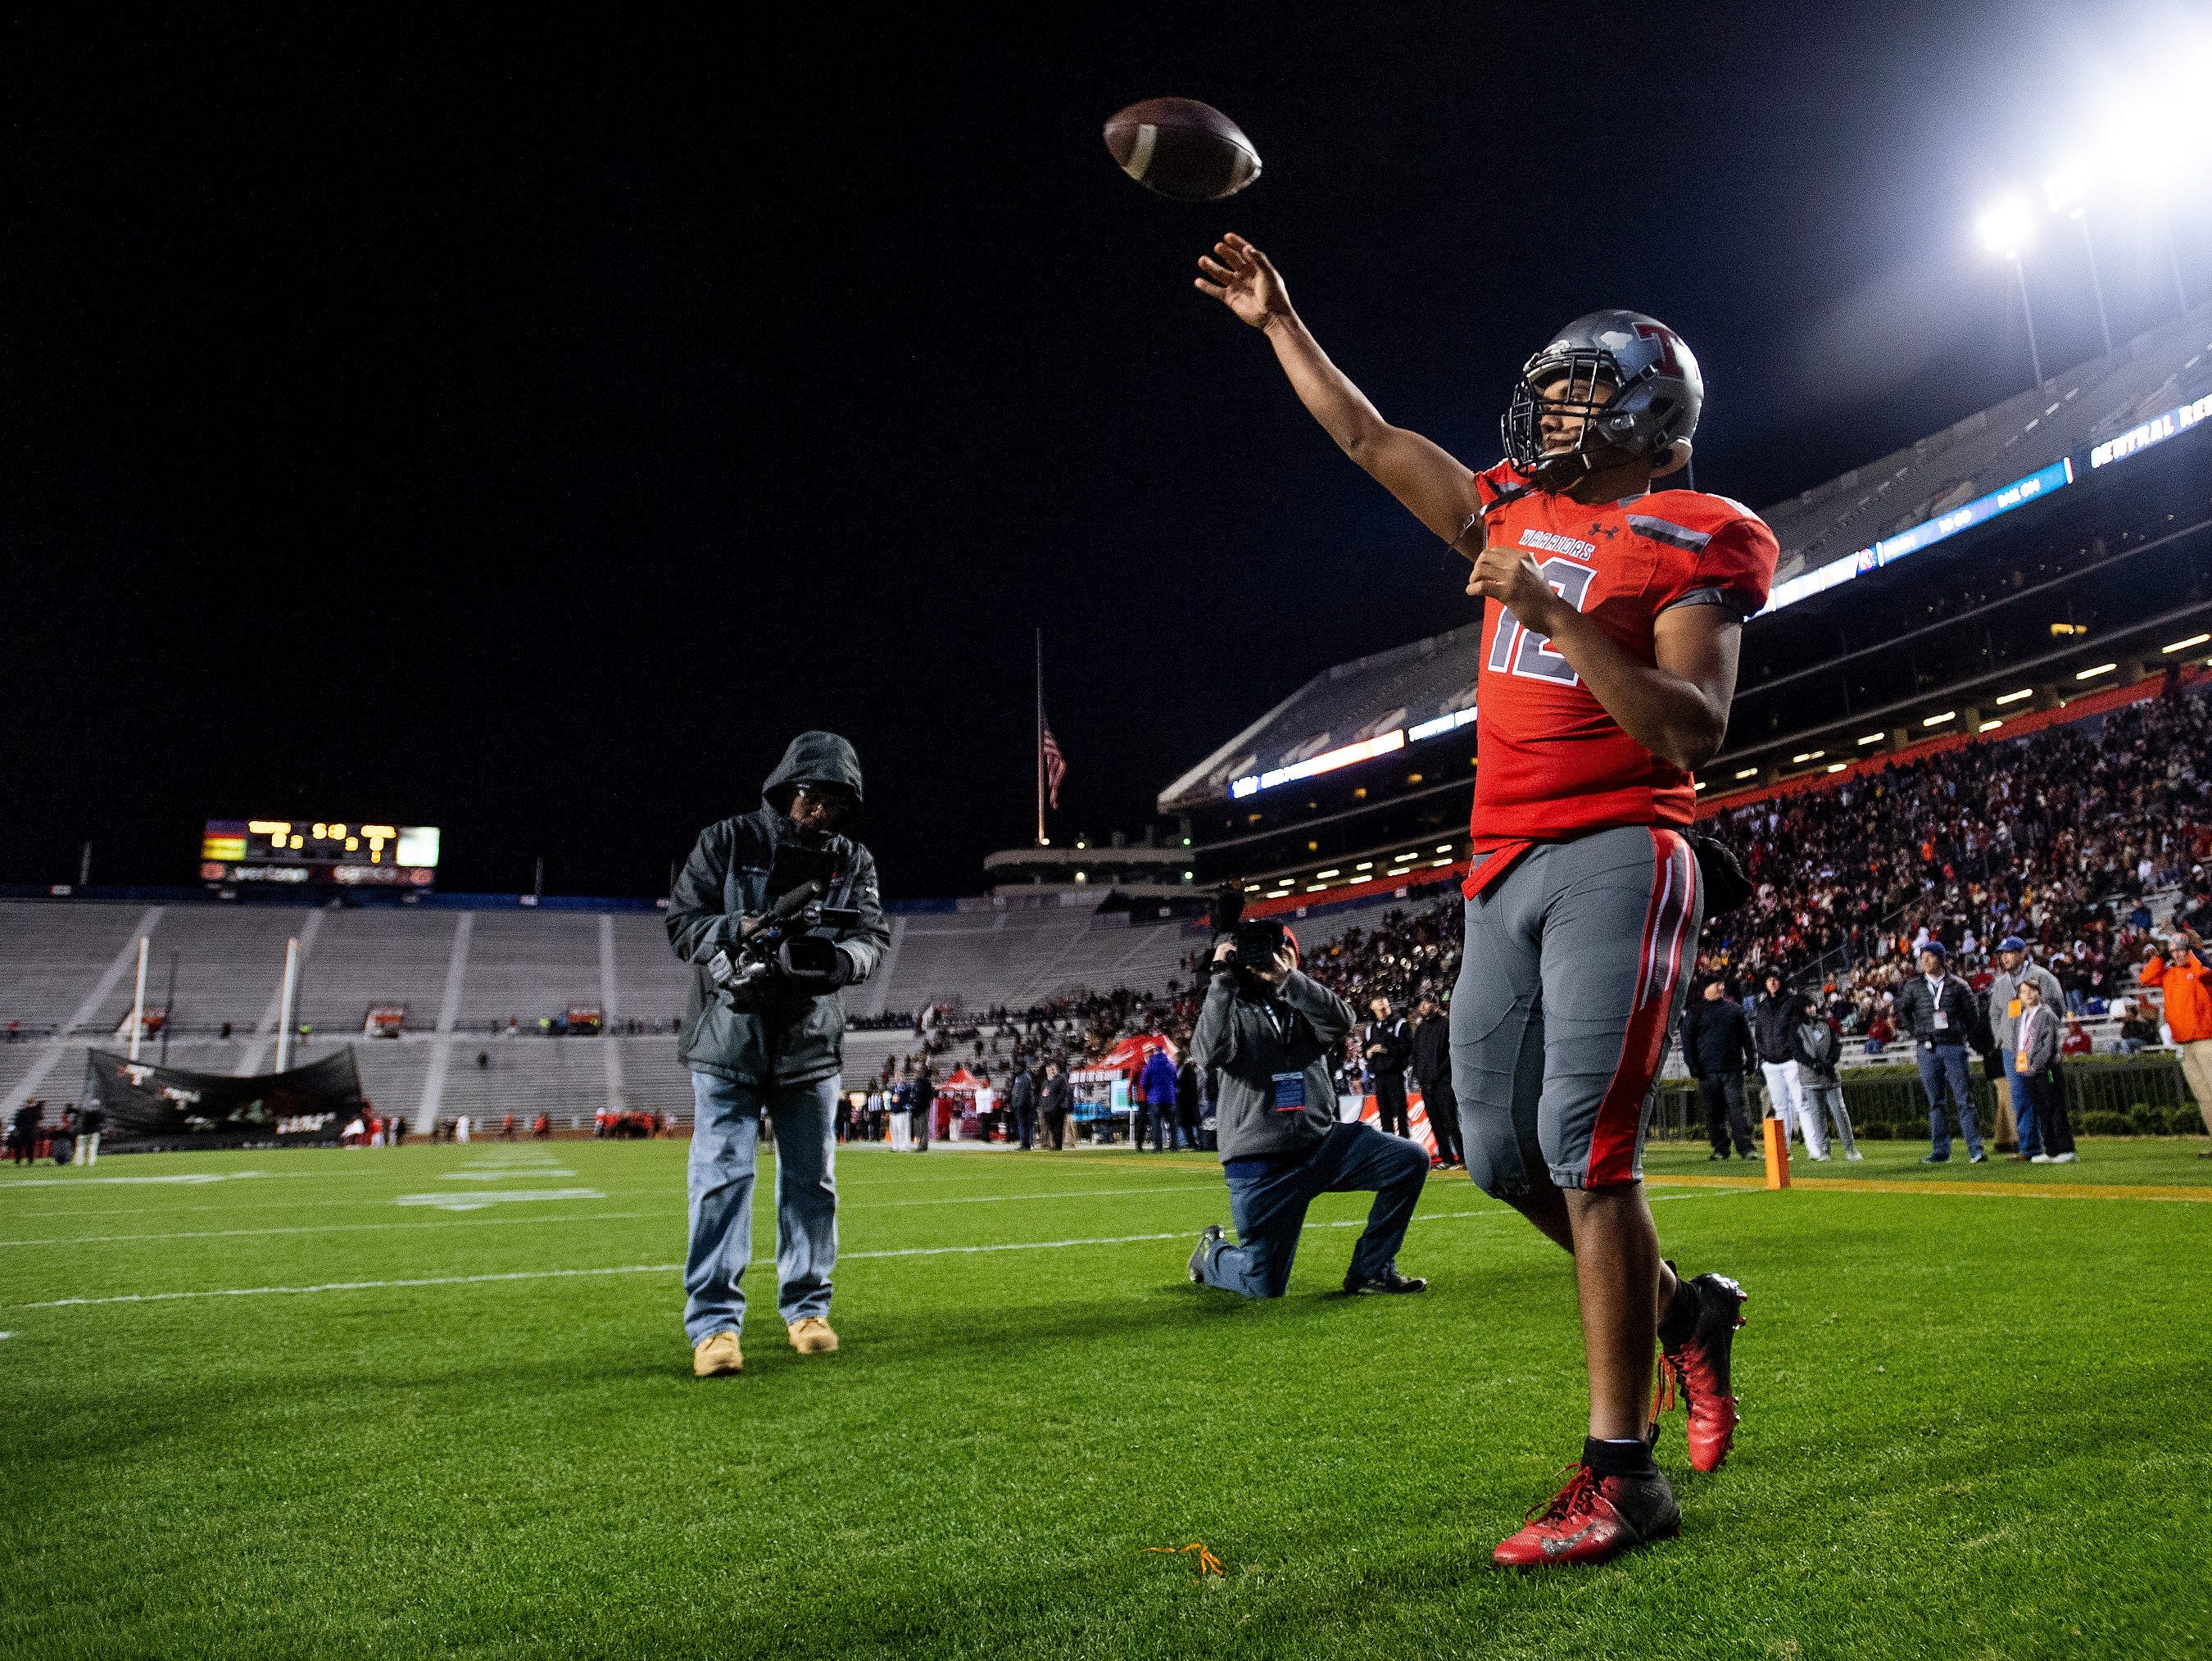 Thompson's Taulia Tagovailoa warms up before the AHSAA Class 7A State Championship Football Game at Jordan Hare Stadium in Auburn, Ala., on Wednesday evening December 5, 2018.